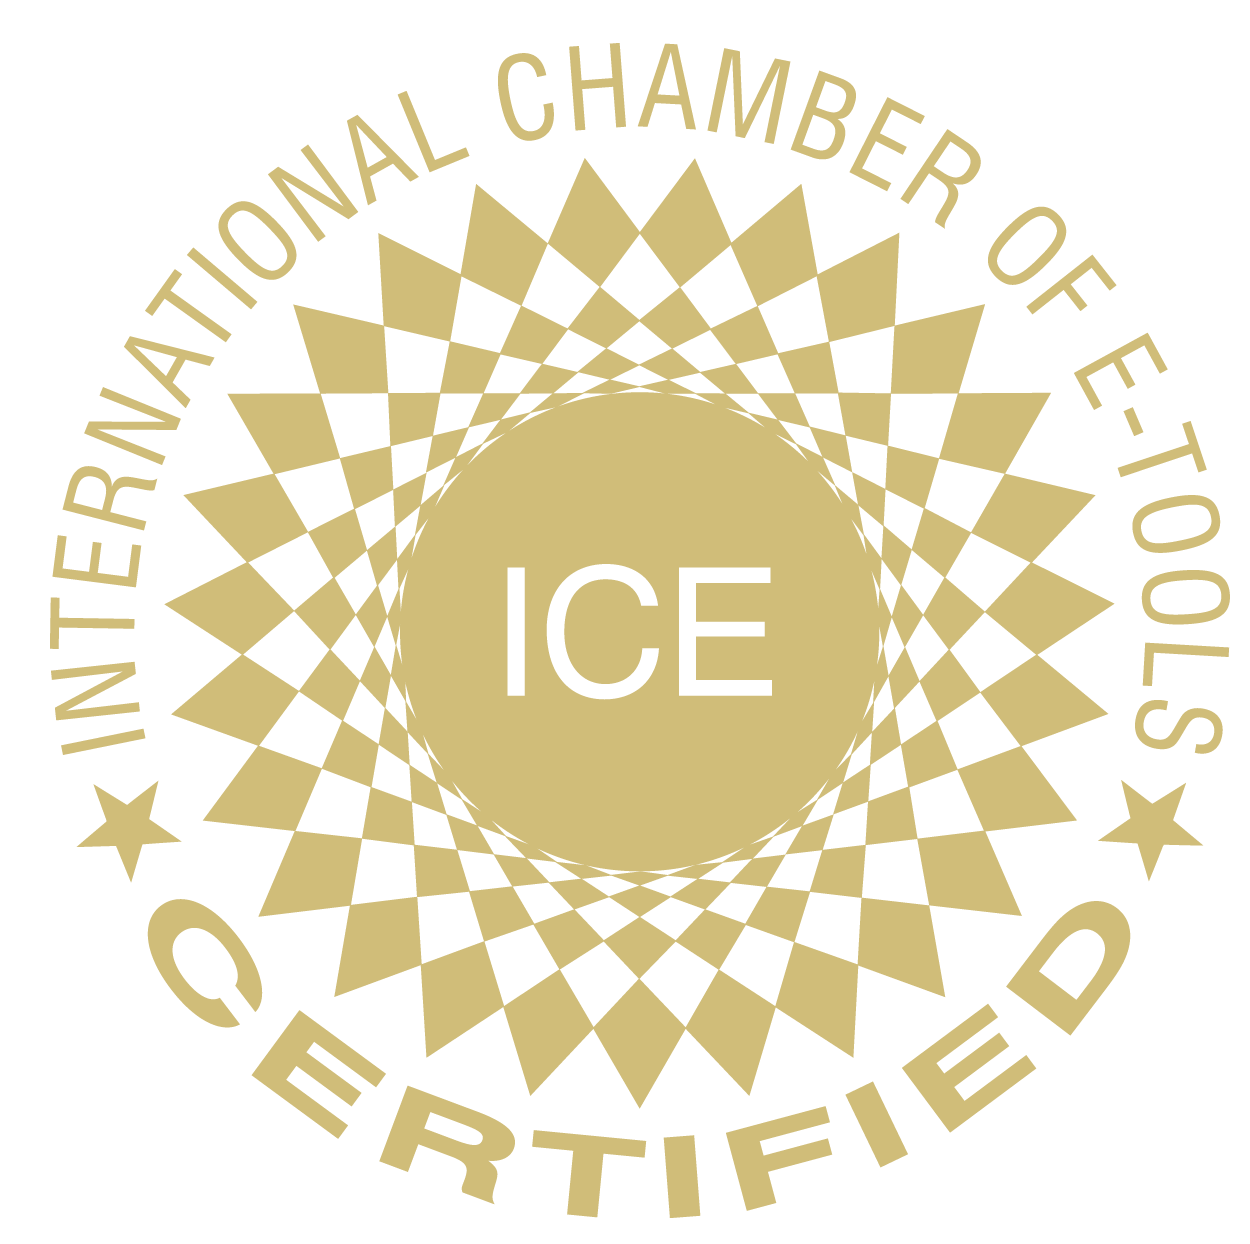 ICE International Chamber of E-Tools-Gold Zertifikat Patagona Pricemonitor Repricing